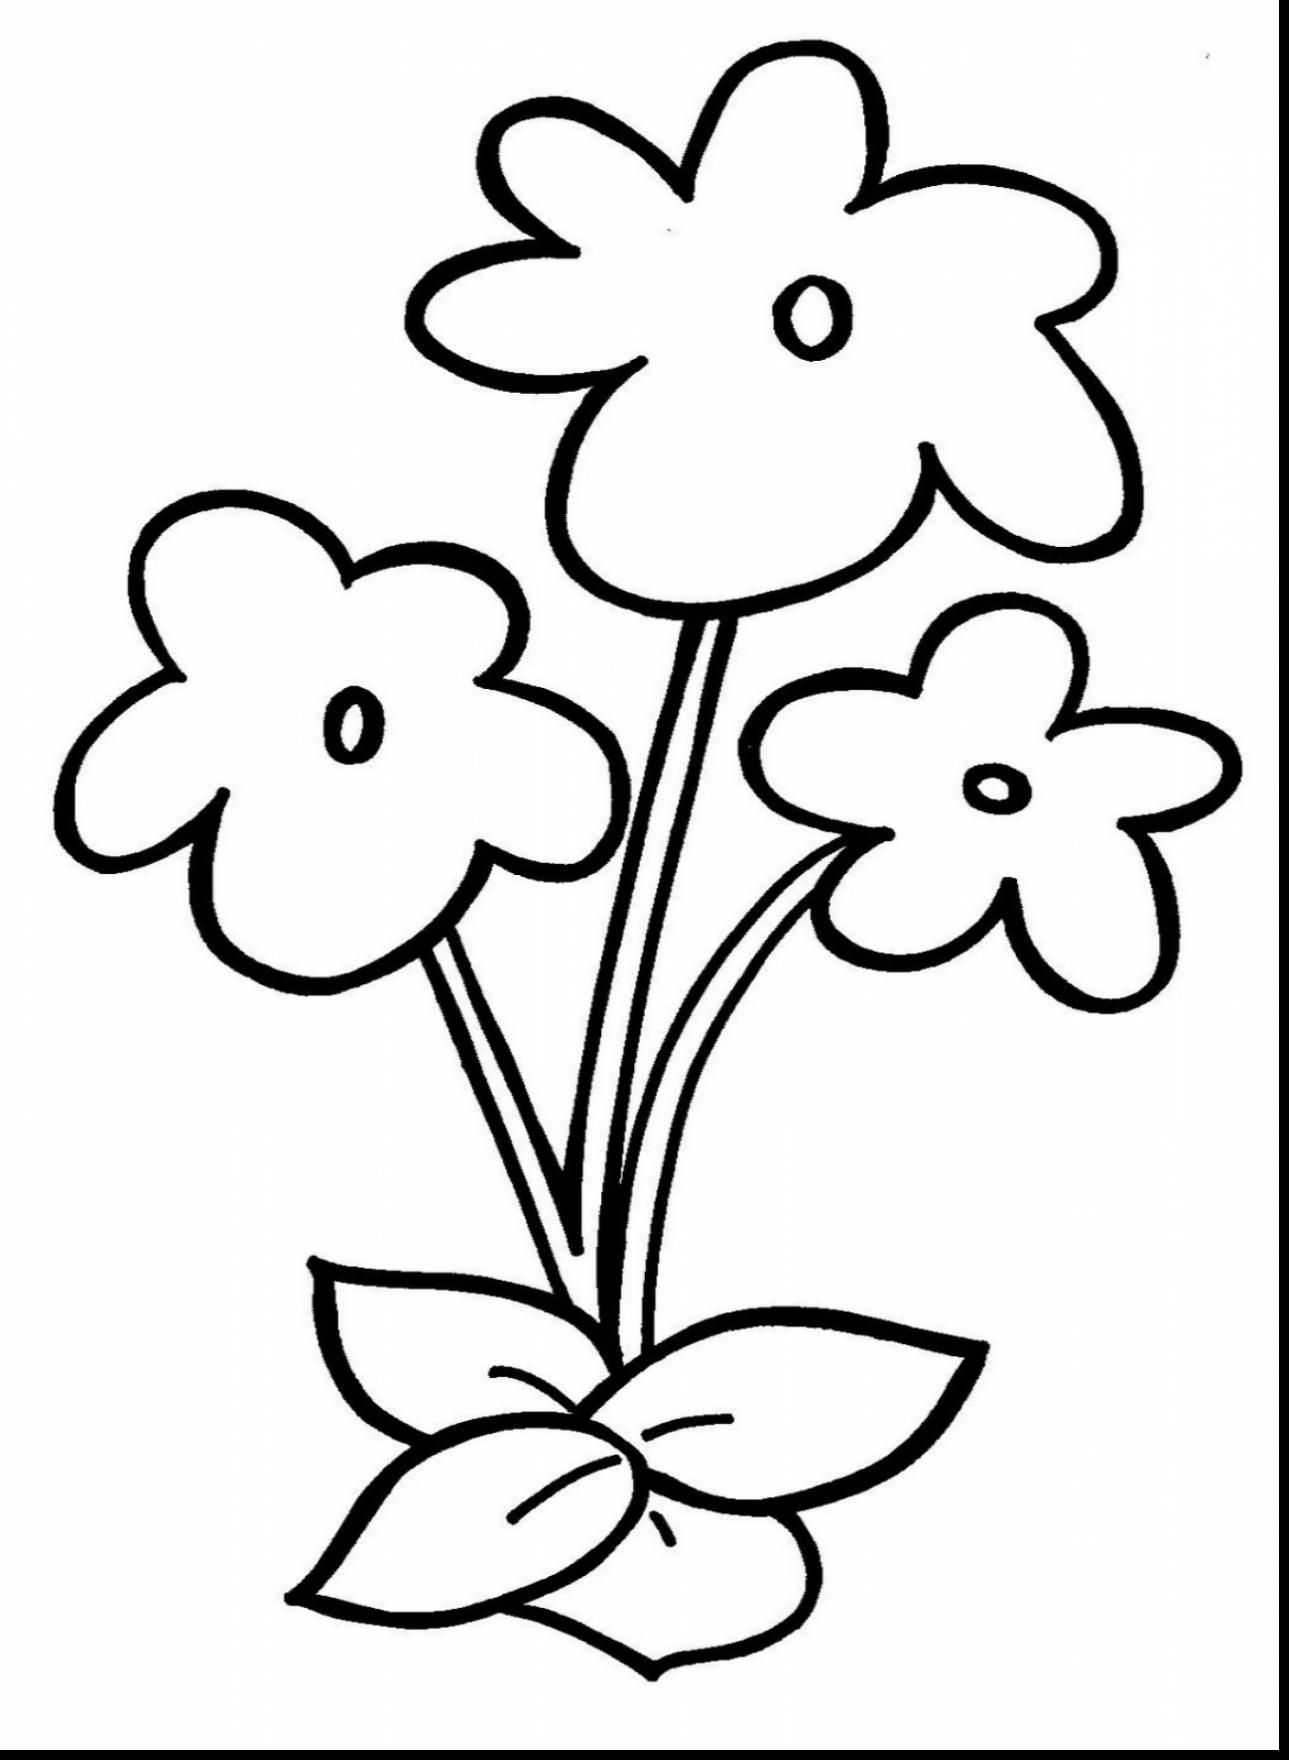 coloring pages flowers printable bouquet of flowers coloring pages for childrens printable coloring pages printable flowers